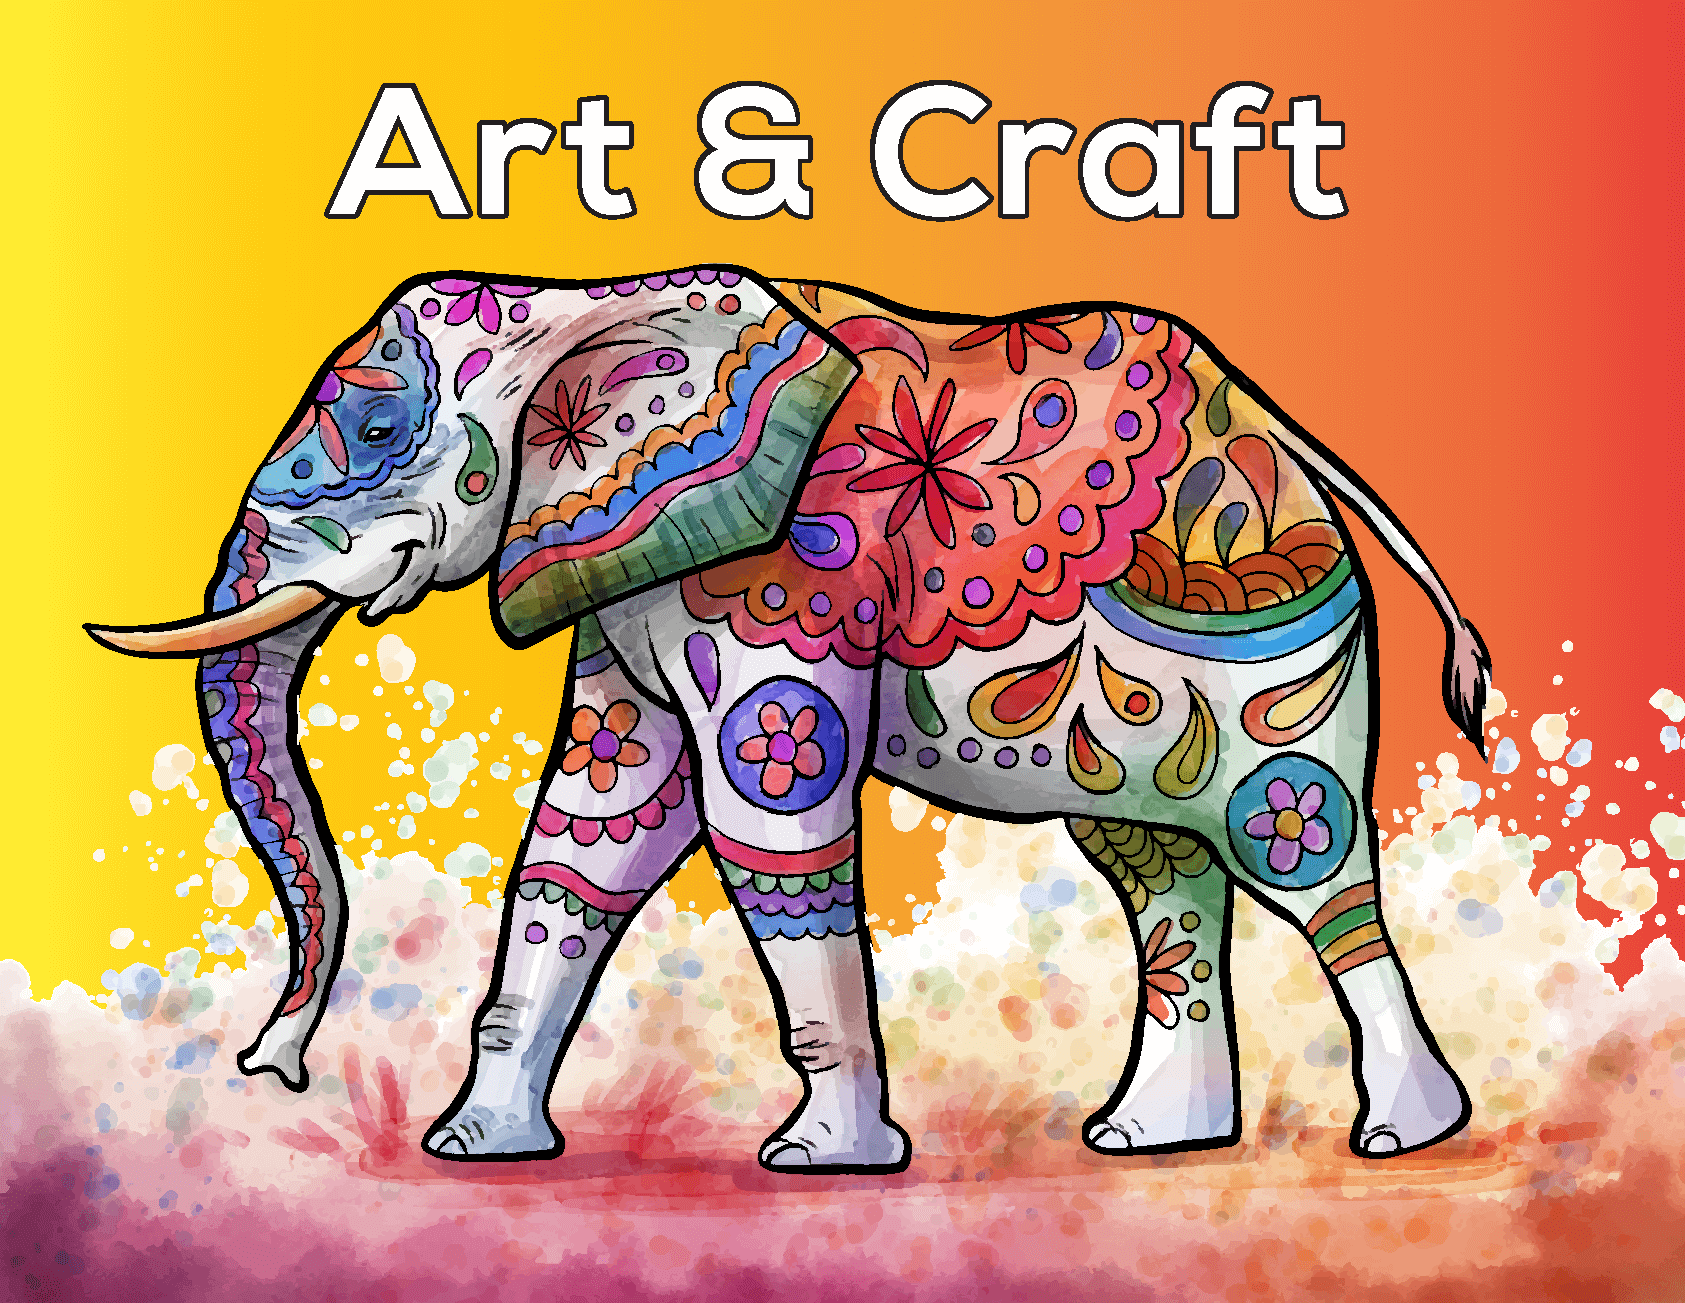 A Colorful Elephant's Art and Craft Logo Design by LogoSkill.